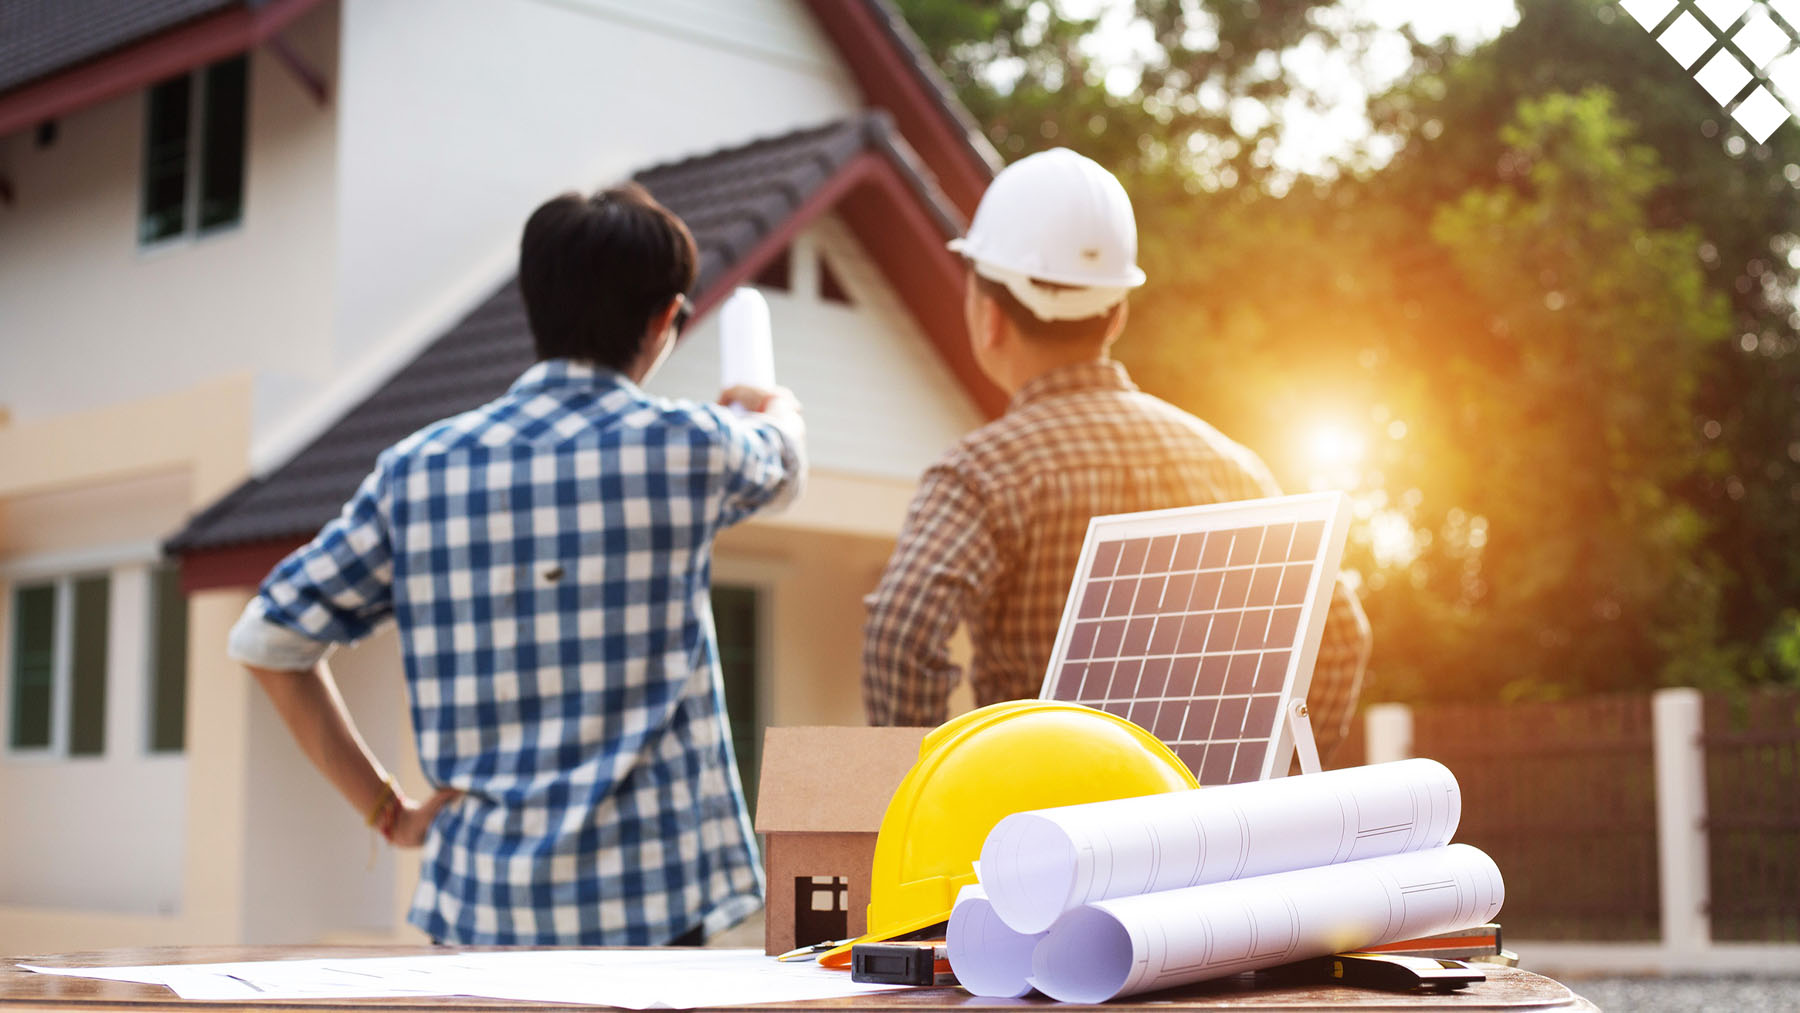 two men reviewing the roof of a home with a solar panel, blue prints, and a hard hat on the table in front of them